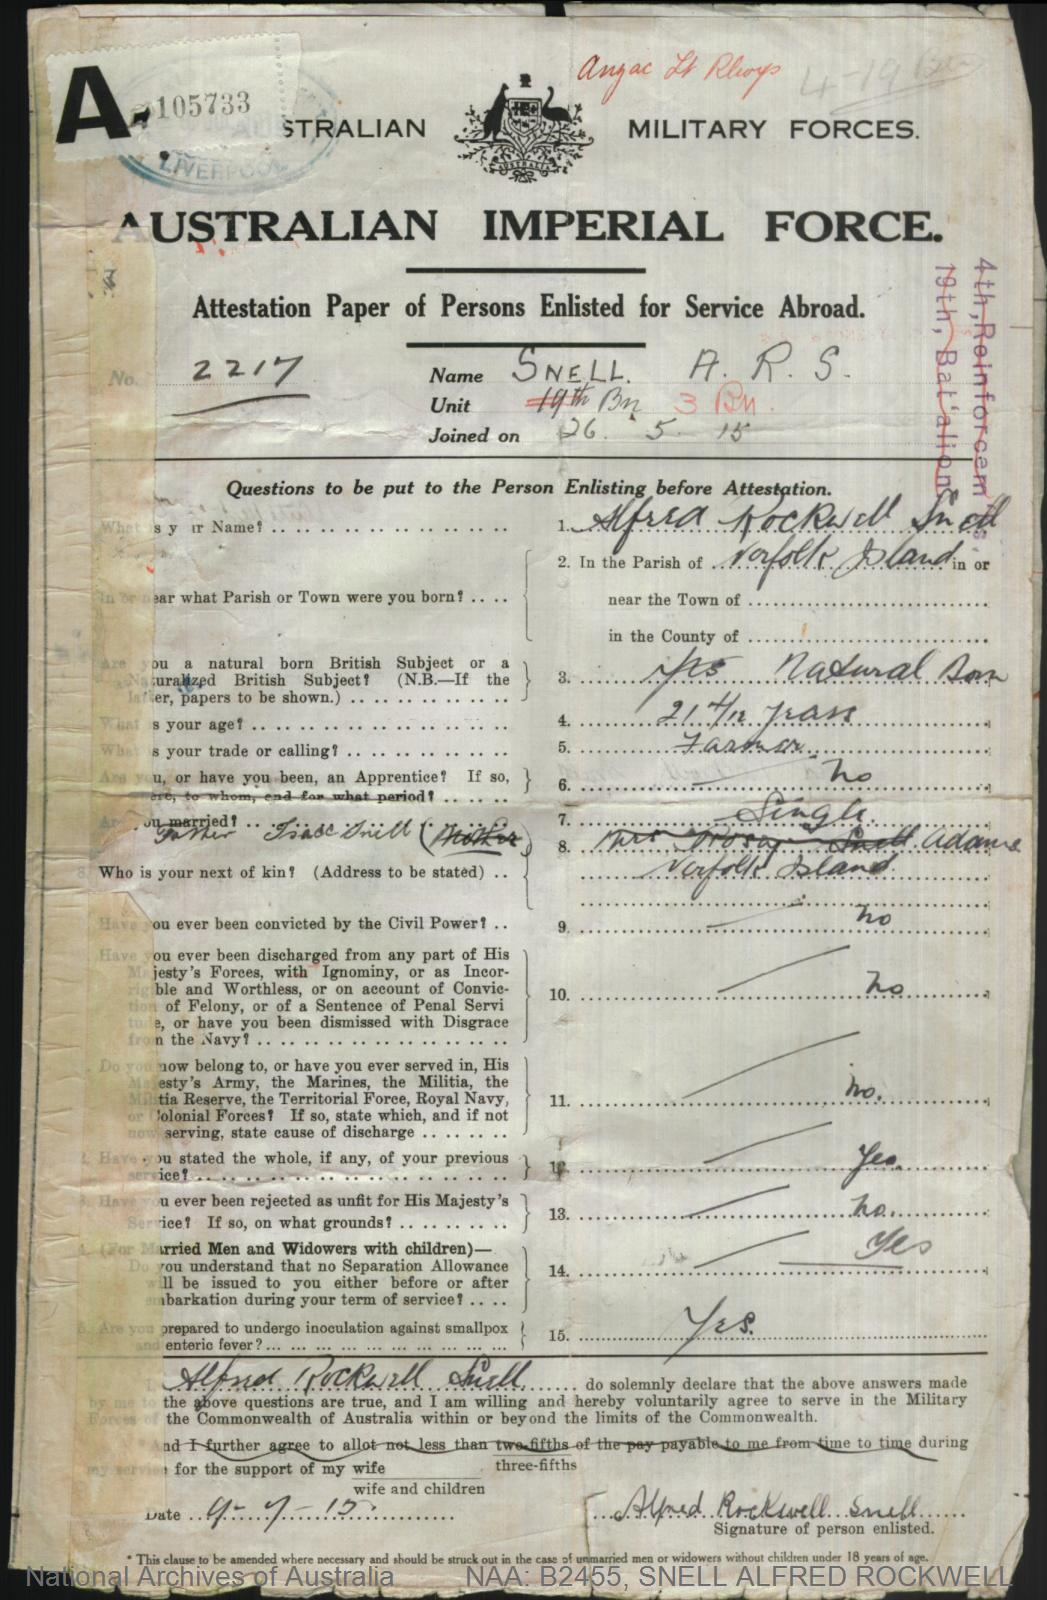 SNELL Alfred Rockwell : Service Number - 2217 : Place of Birth - Norfolk Island NSW : Place of Enlistment - Liverpool NSW : Next of Kin - (Father) SNELL Isaac